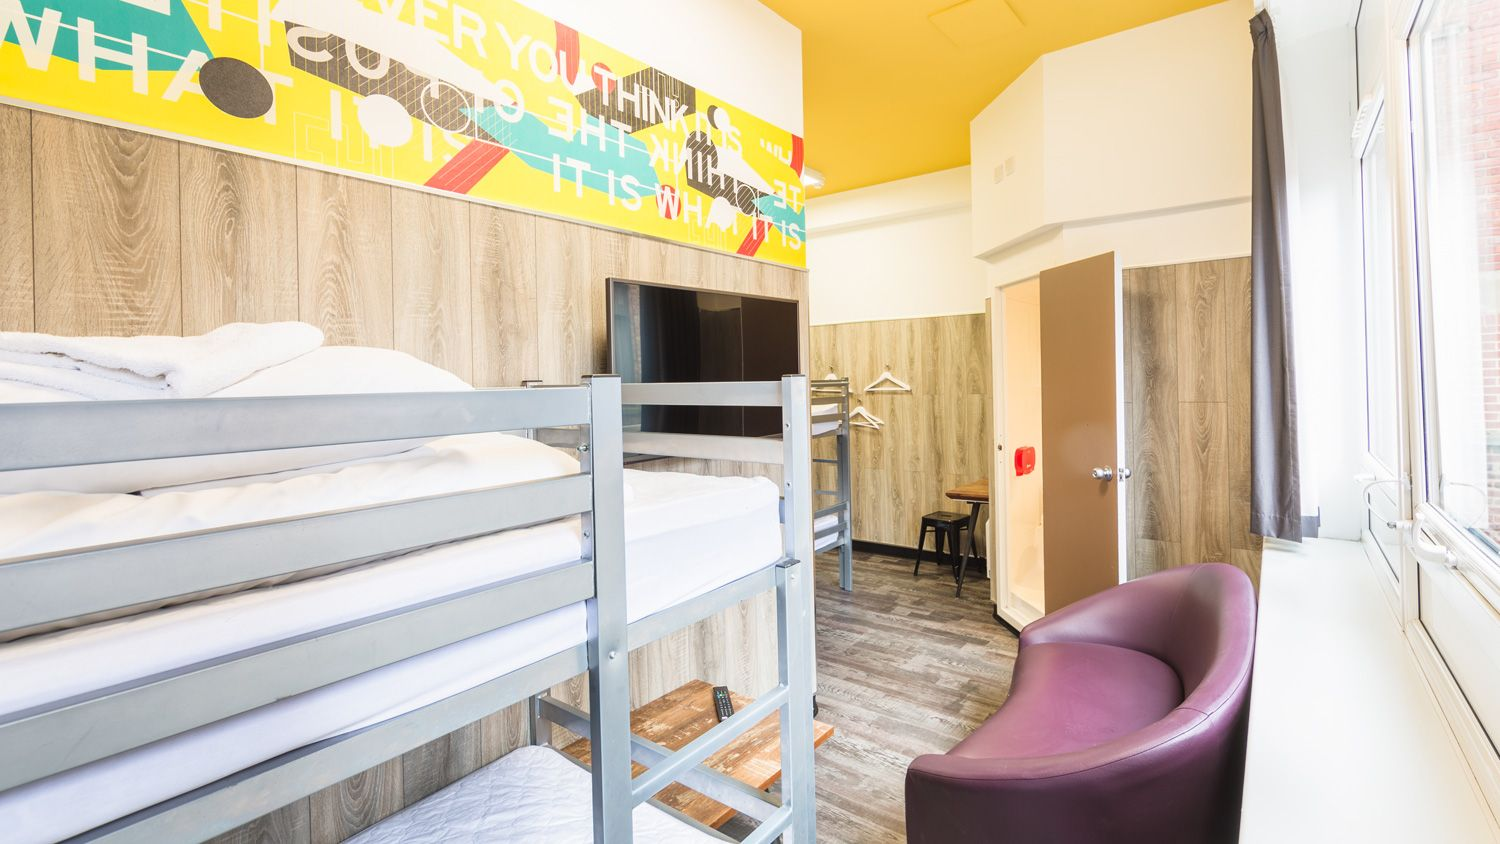 Private Room for 4 People at Euro Hostel Newcastle